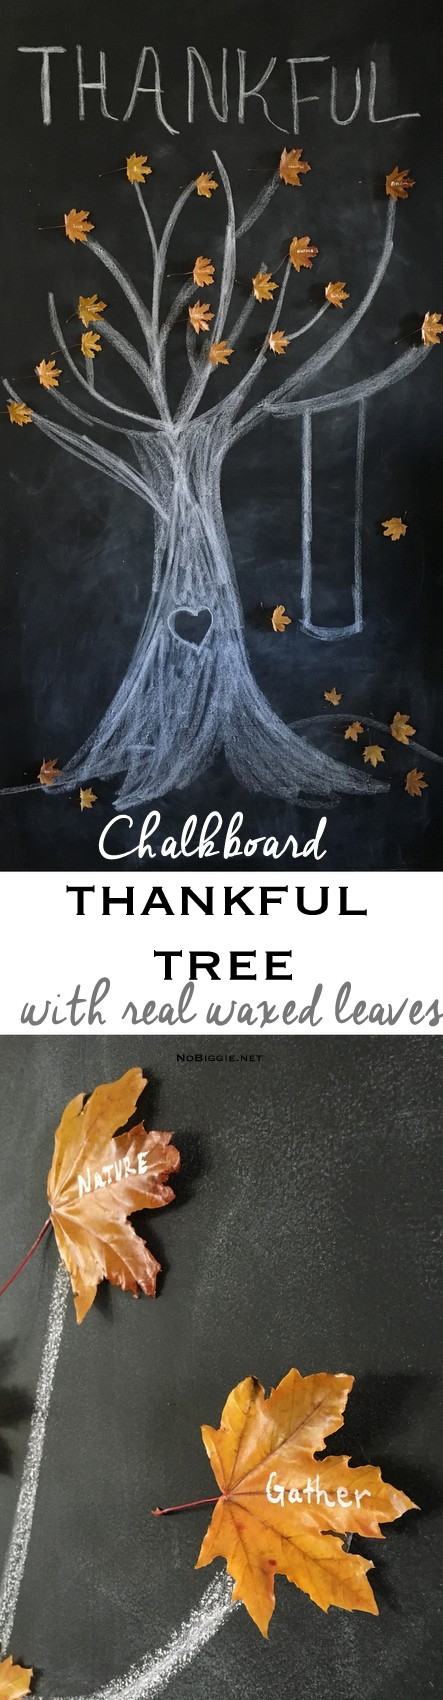 chalkboard thankful tree | NoBiggie.net - love this!